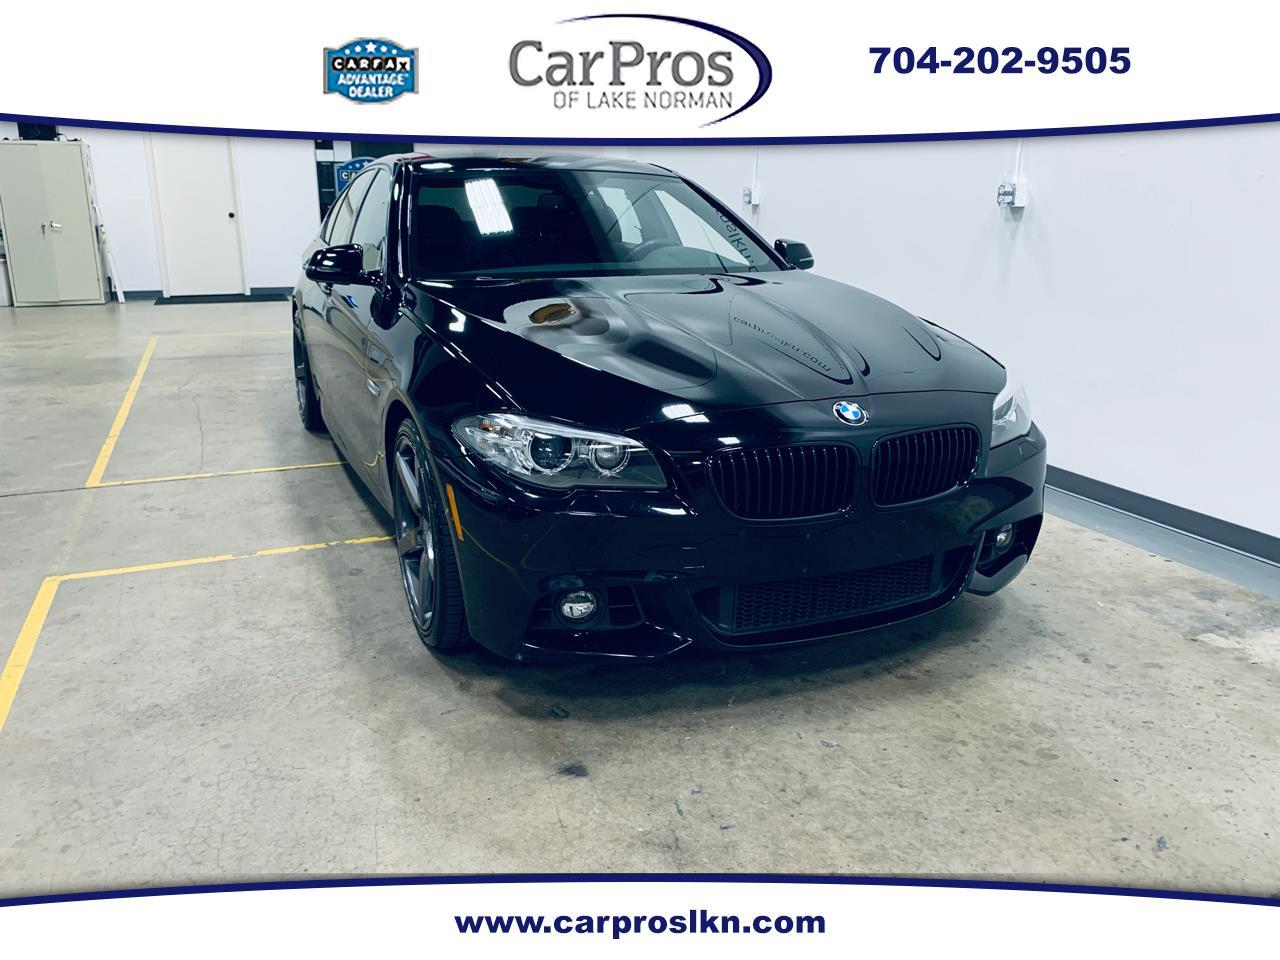 for sale 2014 bmw 5 series in mooresville, north carolina cars - mooresville, nc at geebo